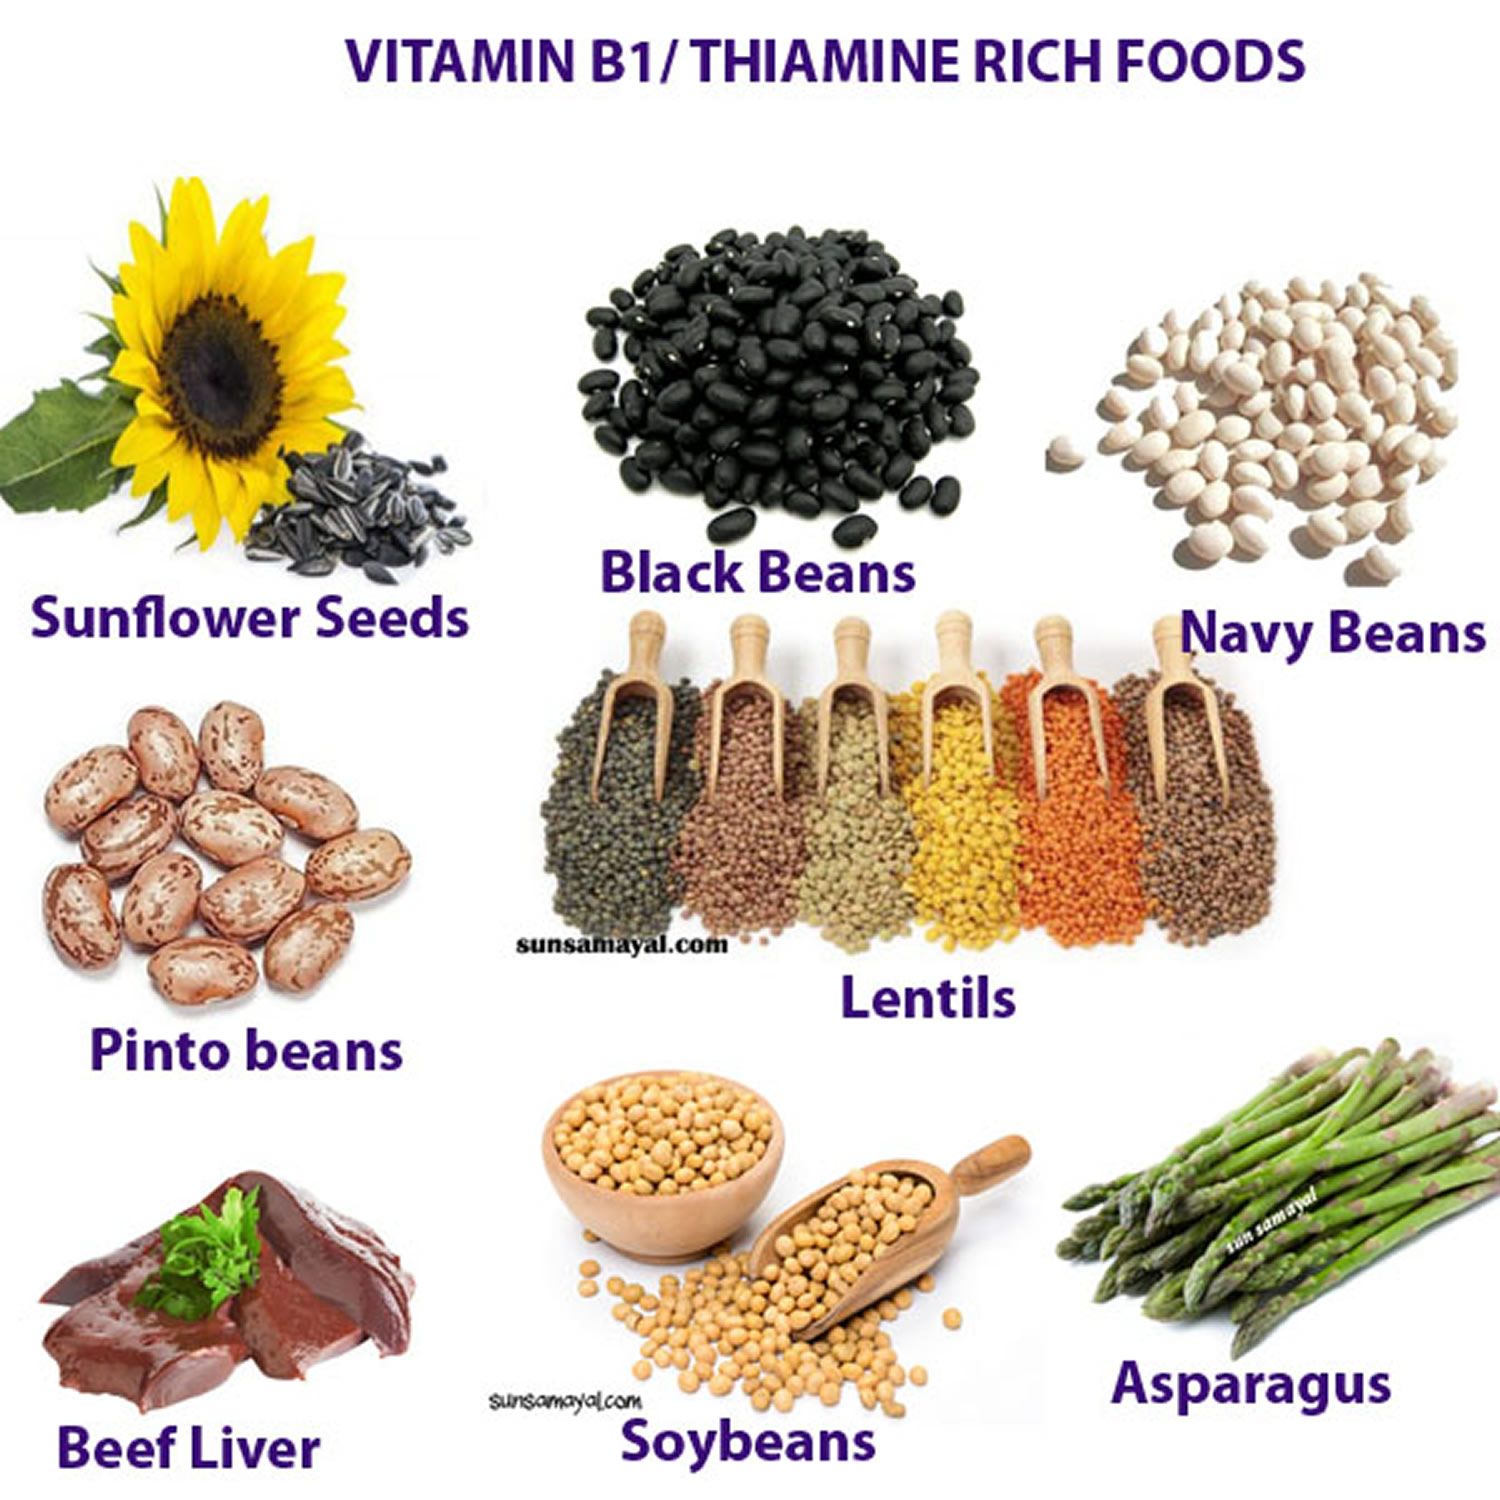 Foods High In Thiamine And B